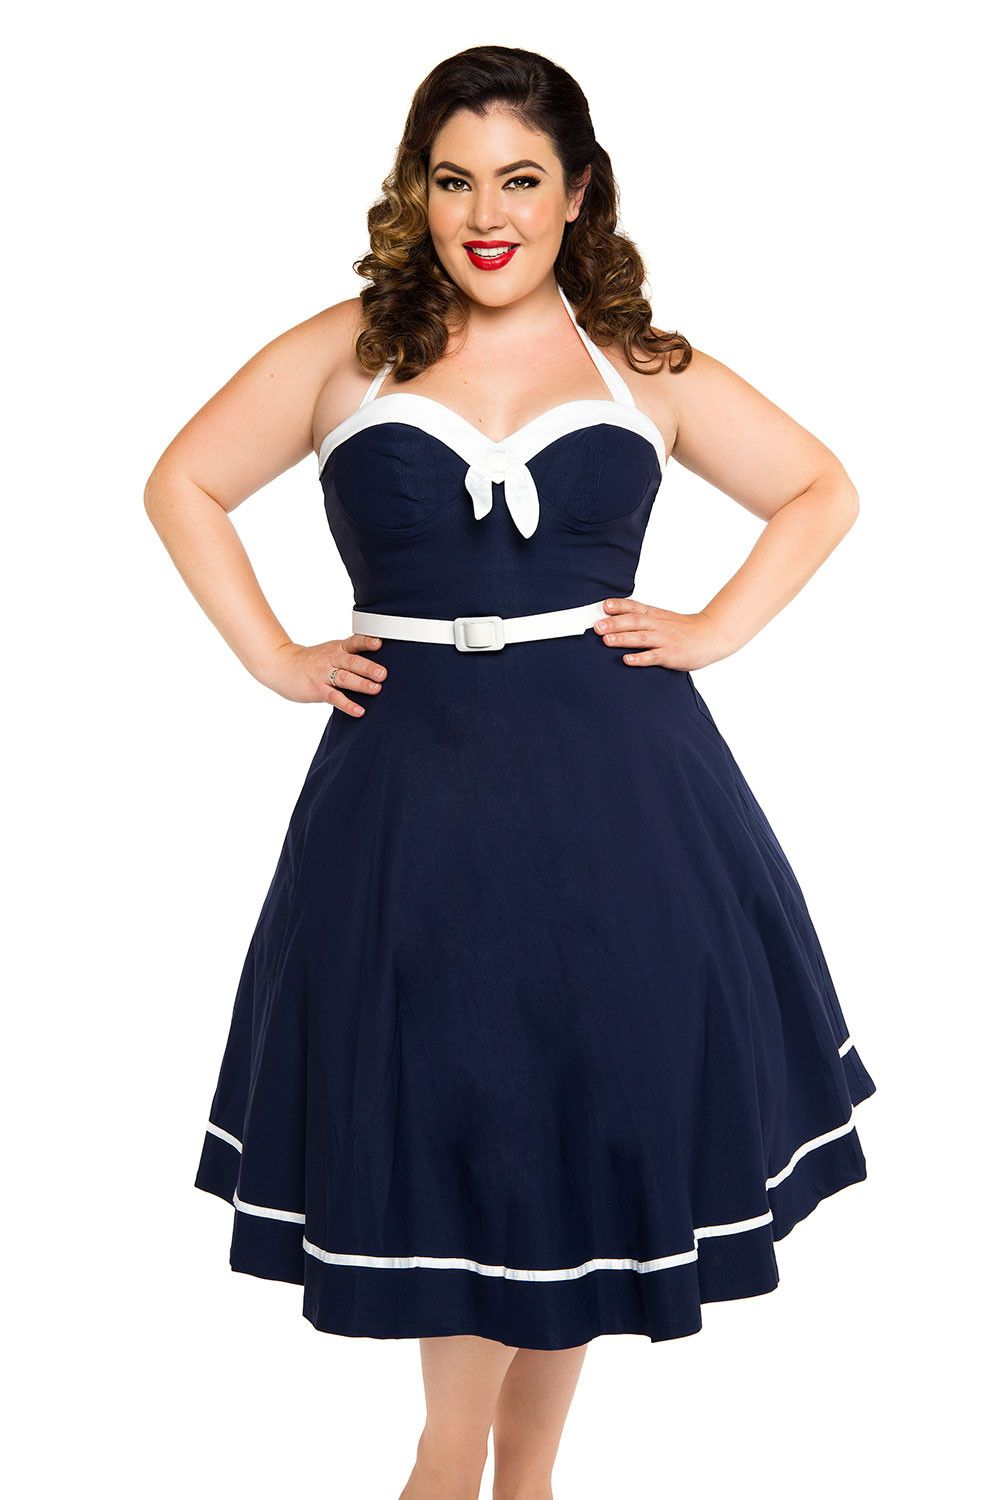 85af285d3464 Pinup Couture - Sailor Swing Dress in Navy - Plus Size | Pinup Girl Clothing